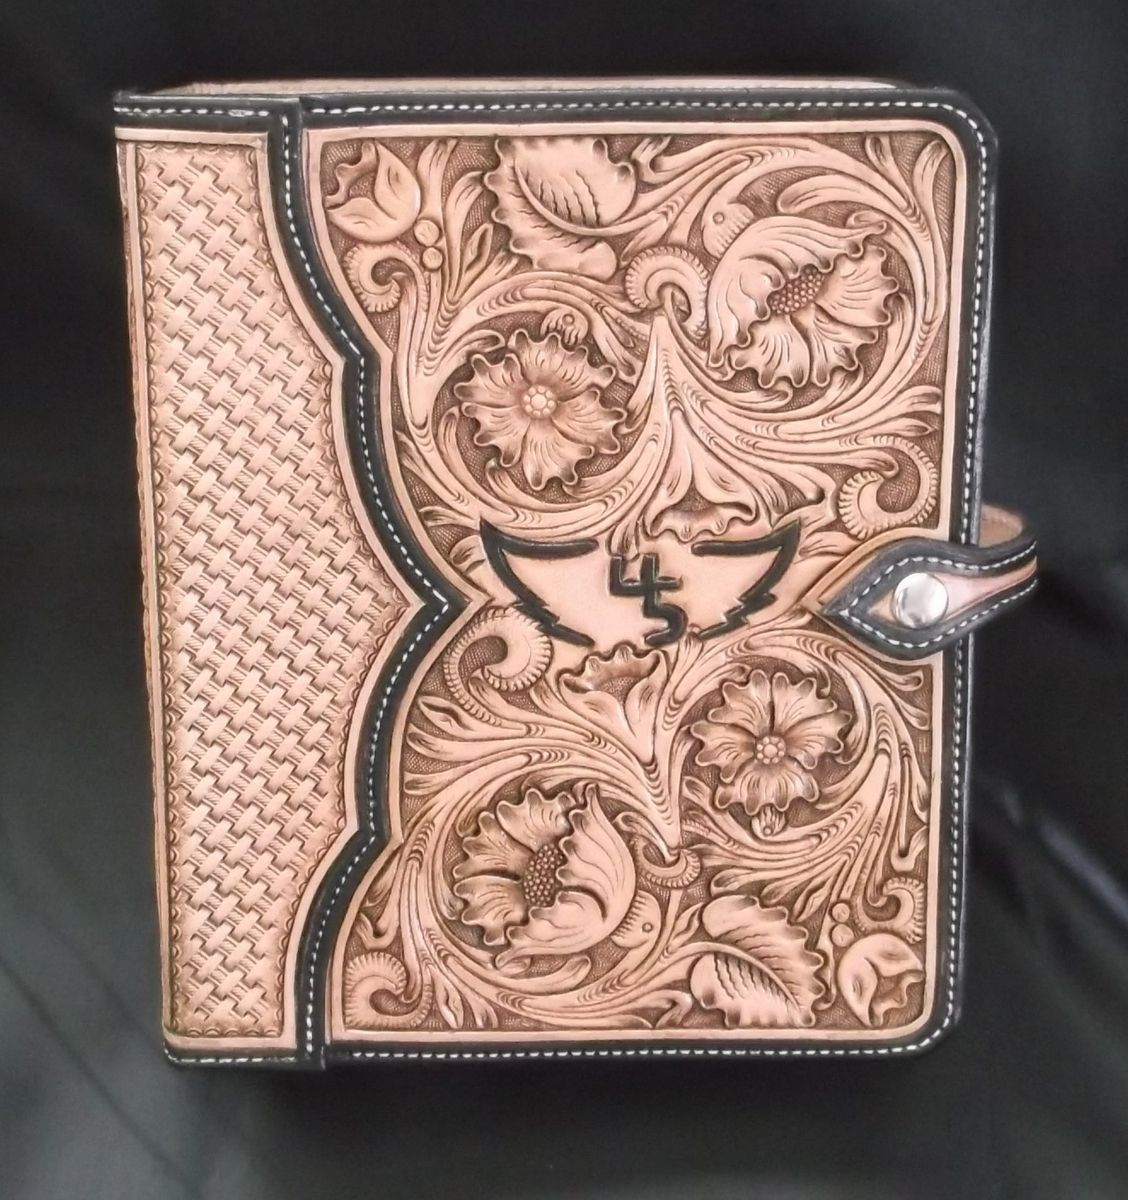 Hand Crafted Custom Leather Notebooks and Binders by Double U Leather | CustomMade.com